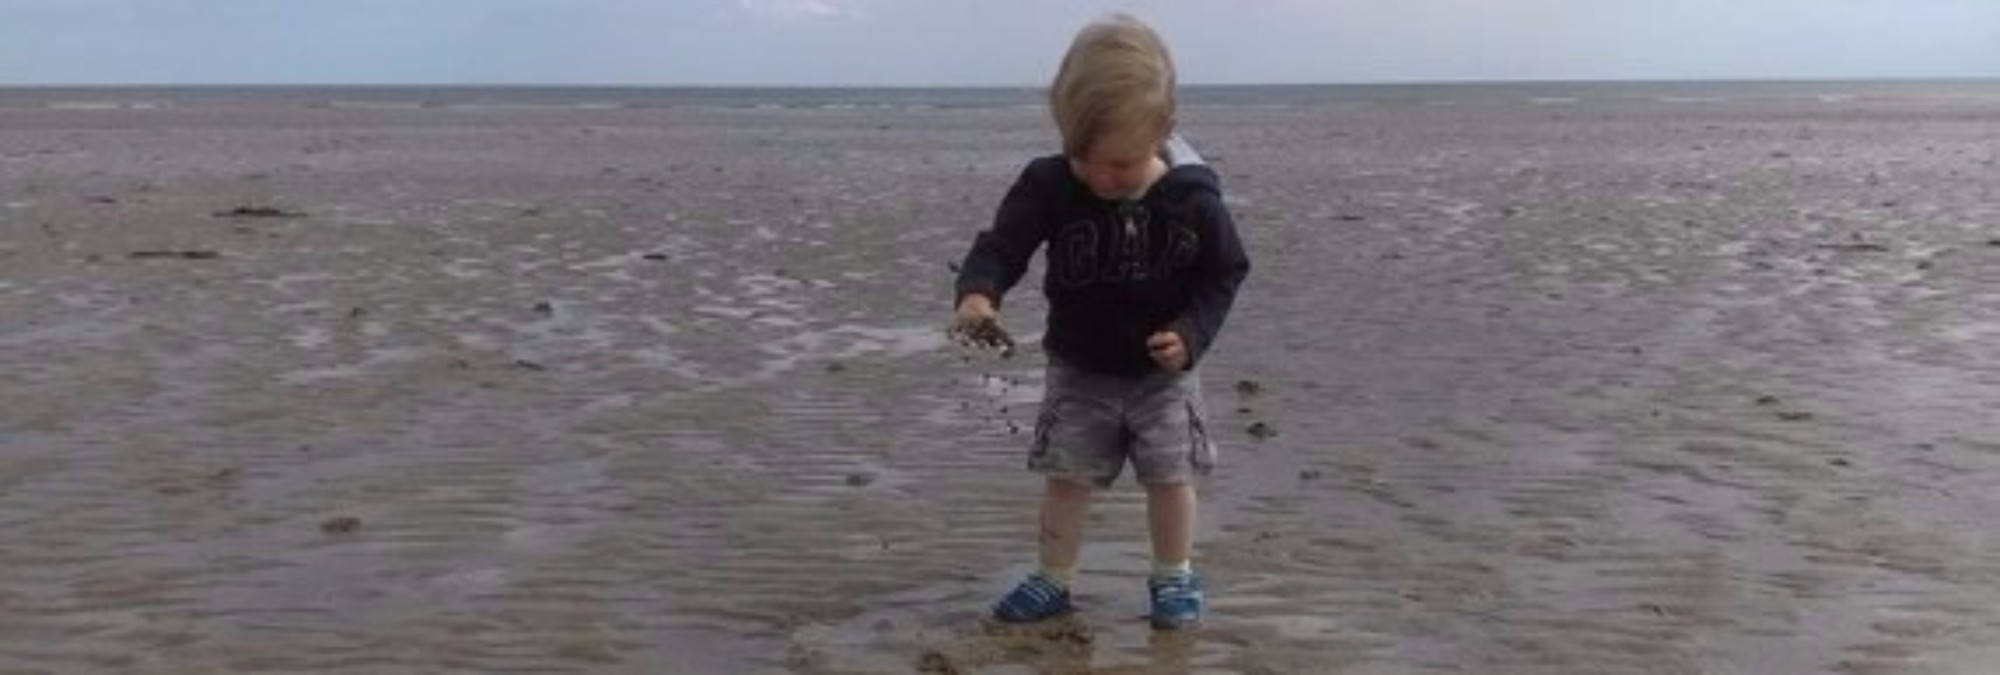 boy exploring wet sand